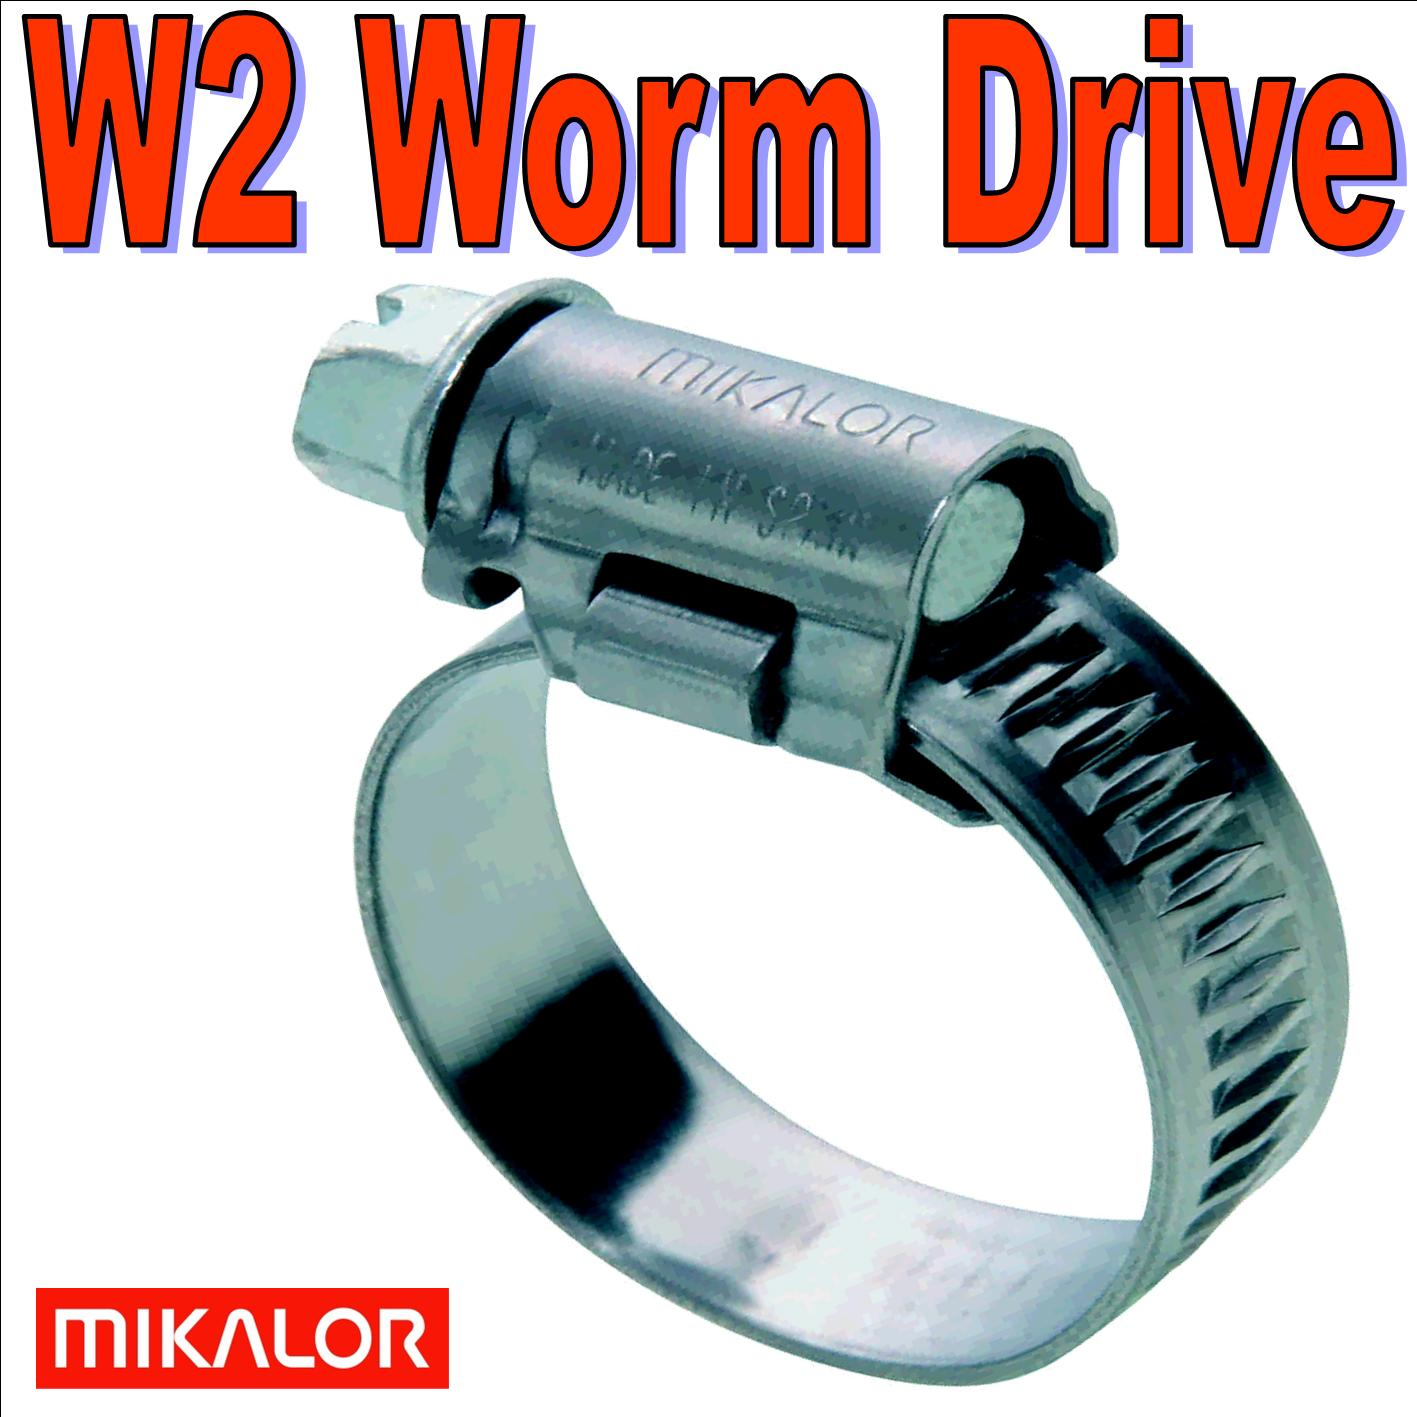 Mikalor 5 X 32-50mm Stainless W2 Worm Drive Hose Clip